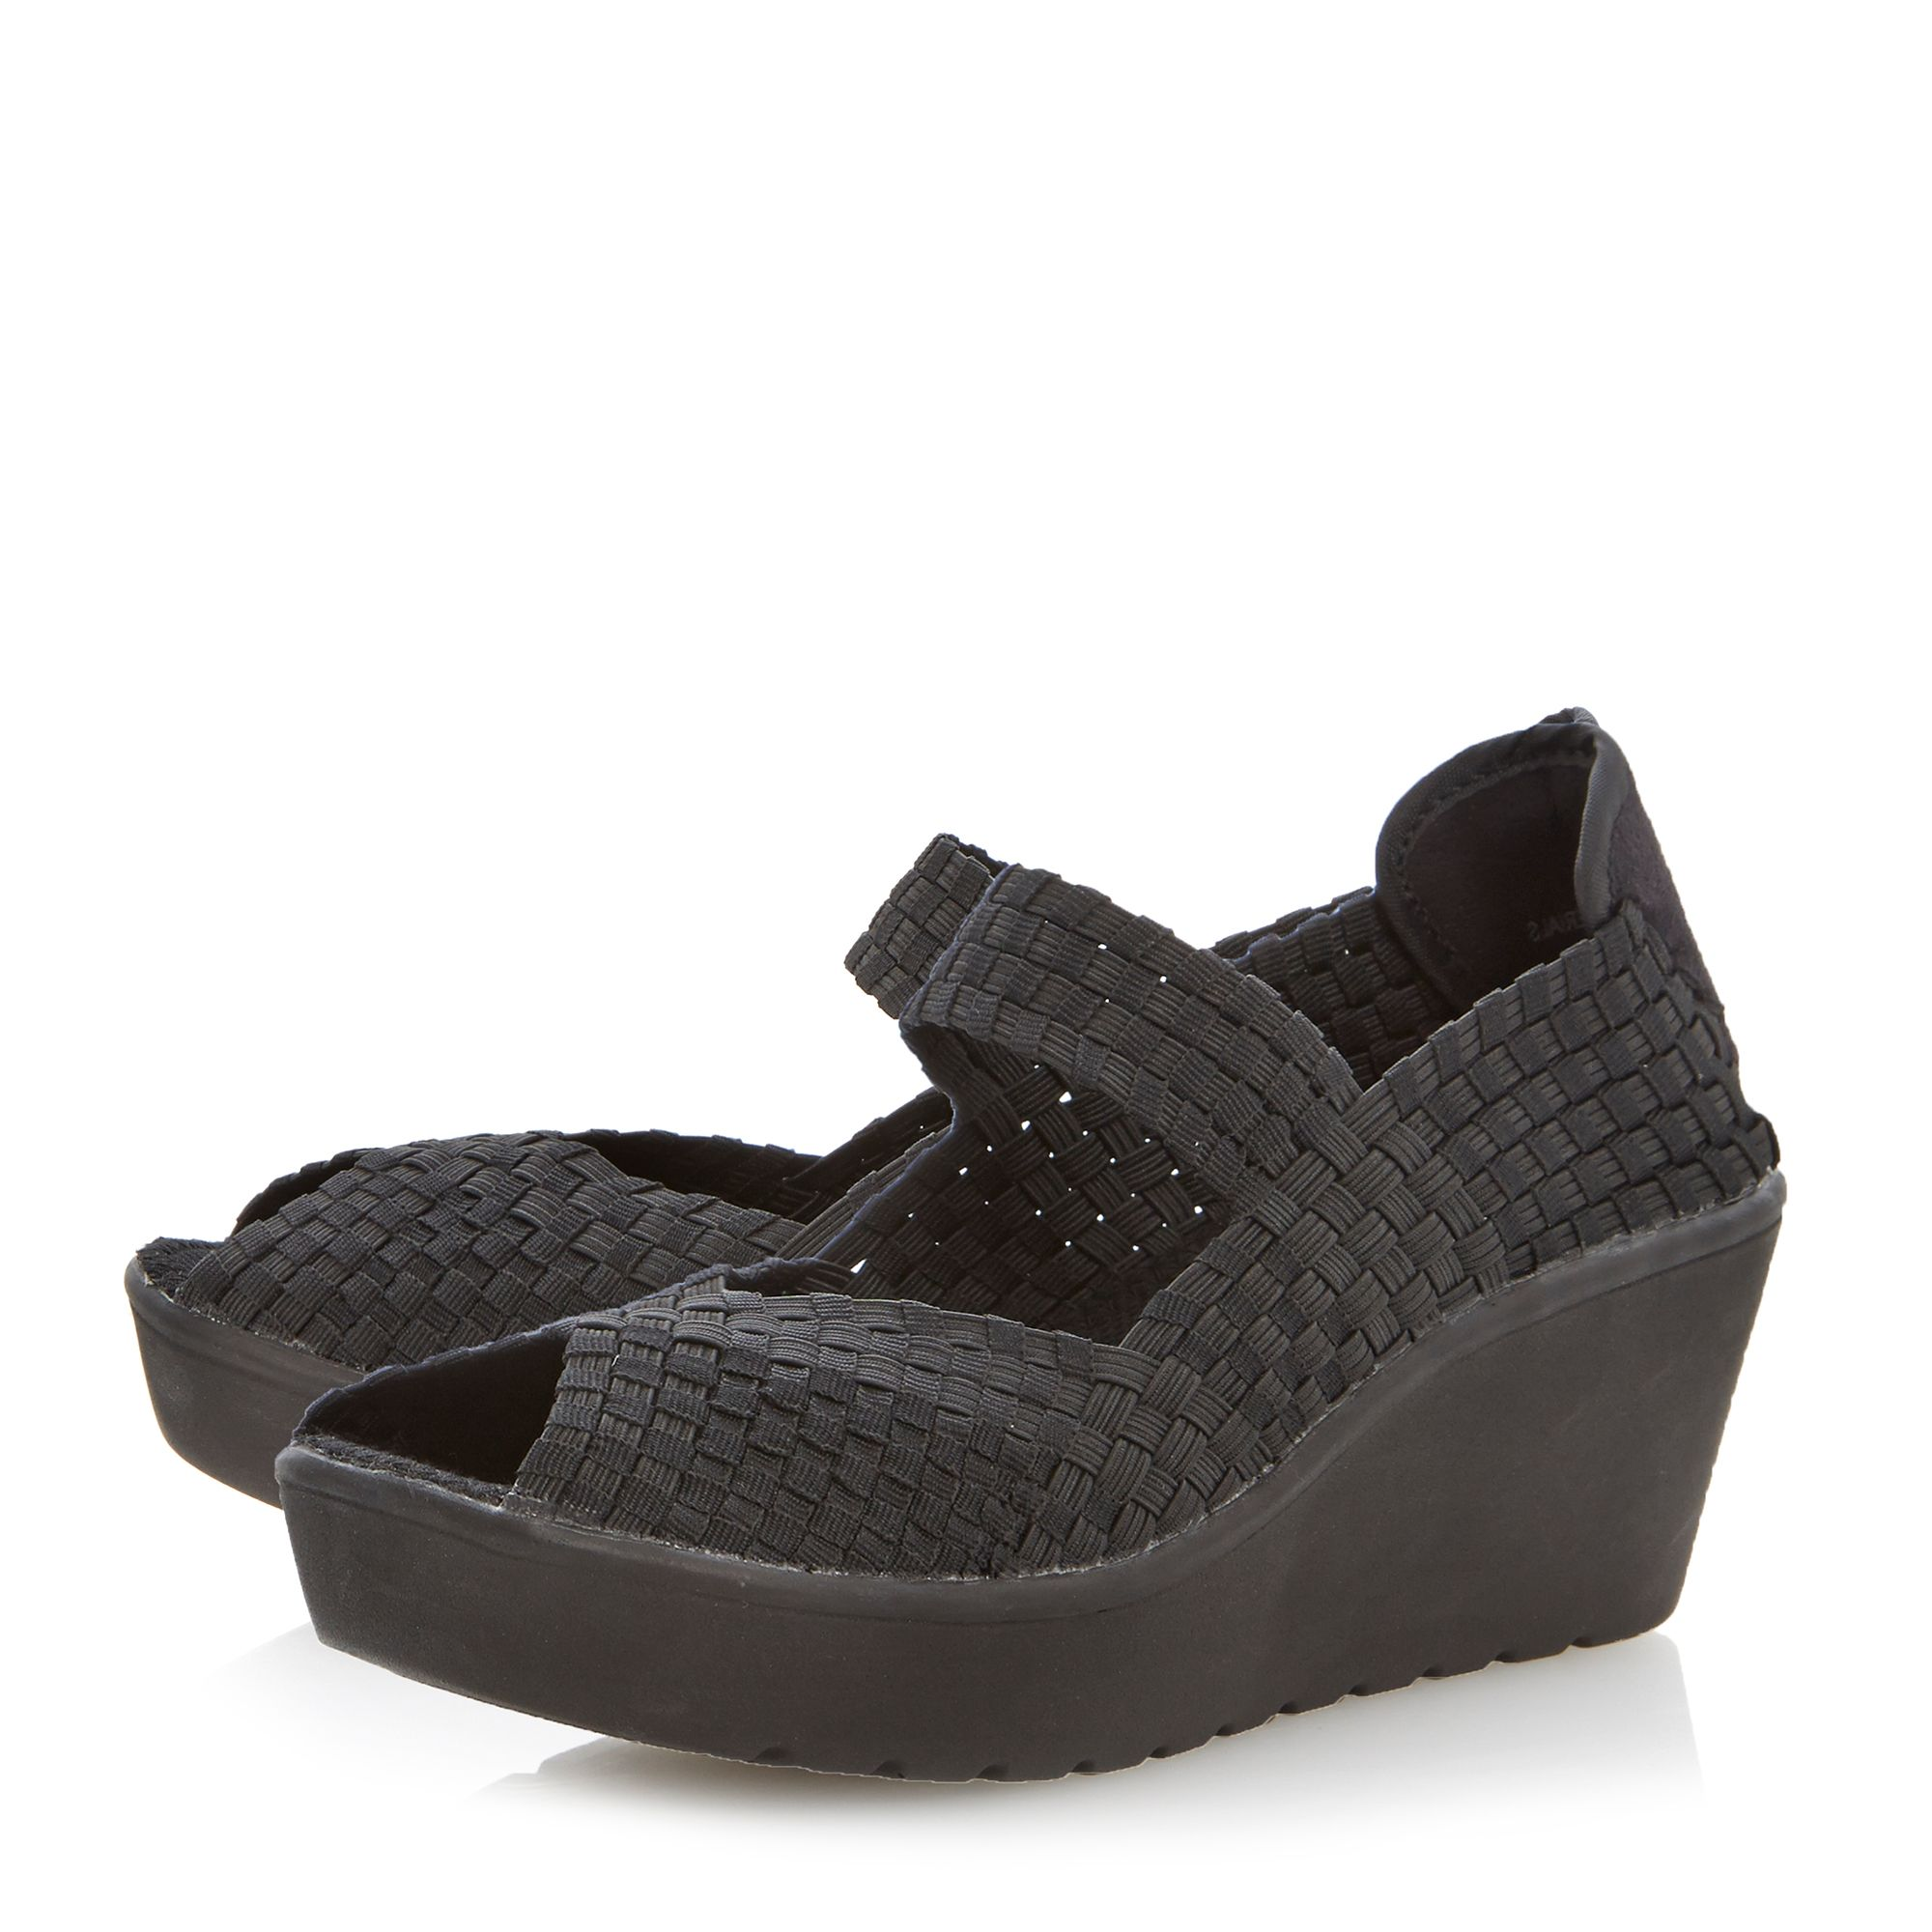 Brynn sm woven elastic mary jane court shoes